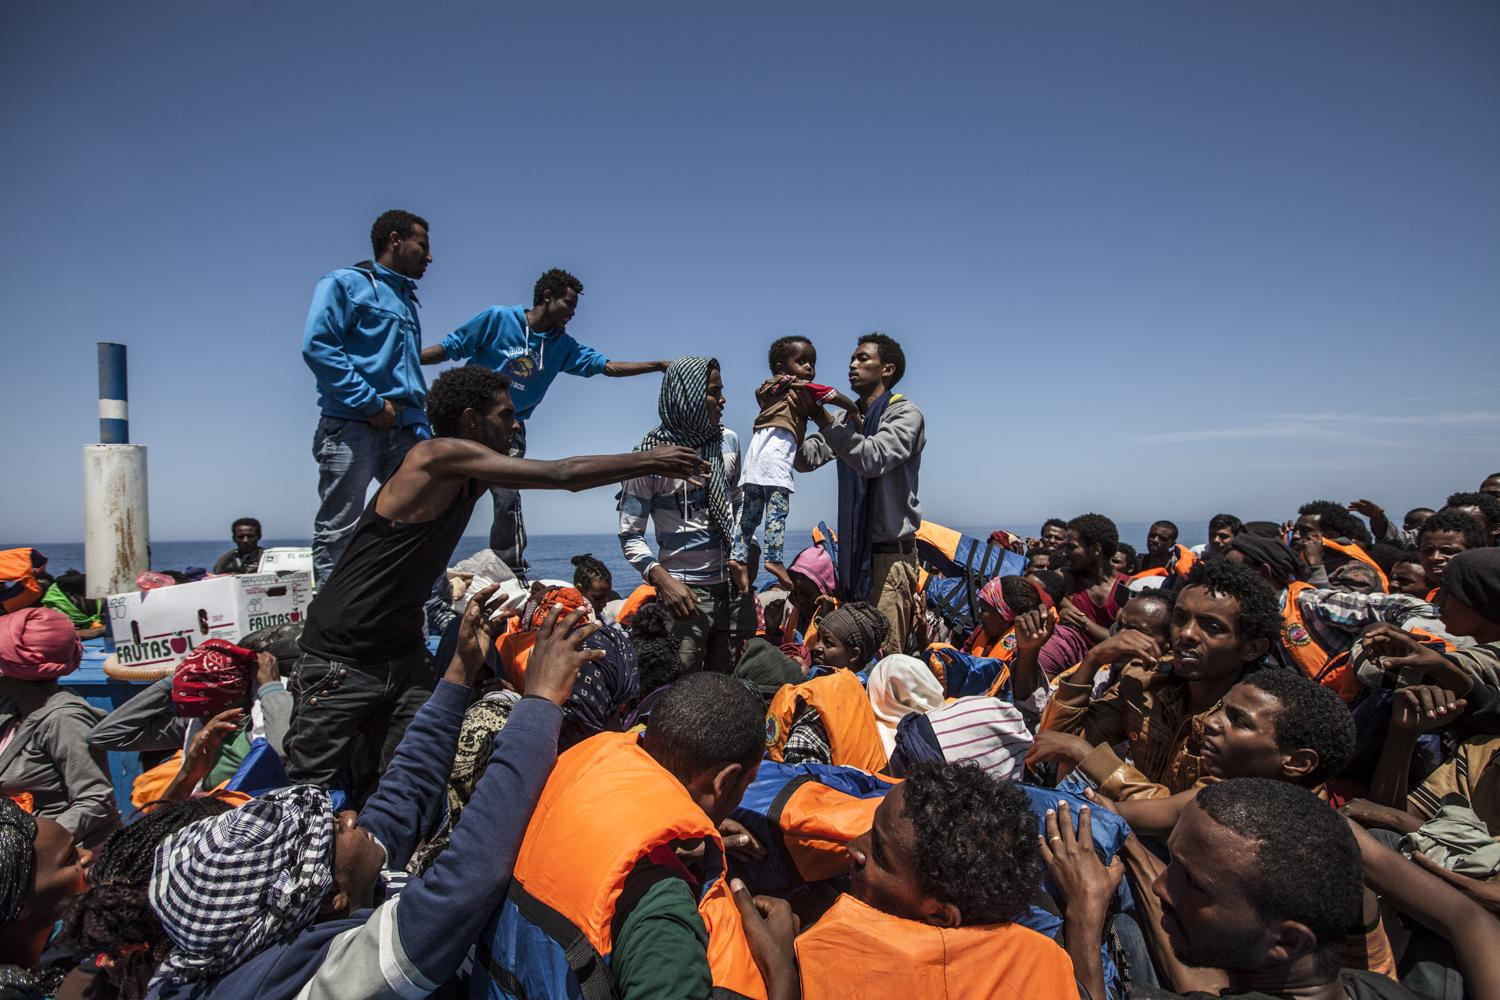 Mediterranean Refugees Migrant Offshore Aid Station (MOAS) 2